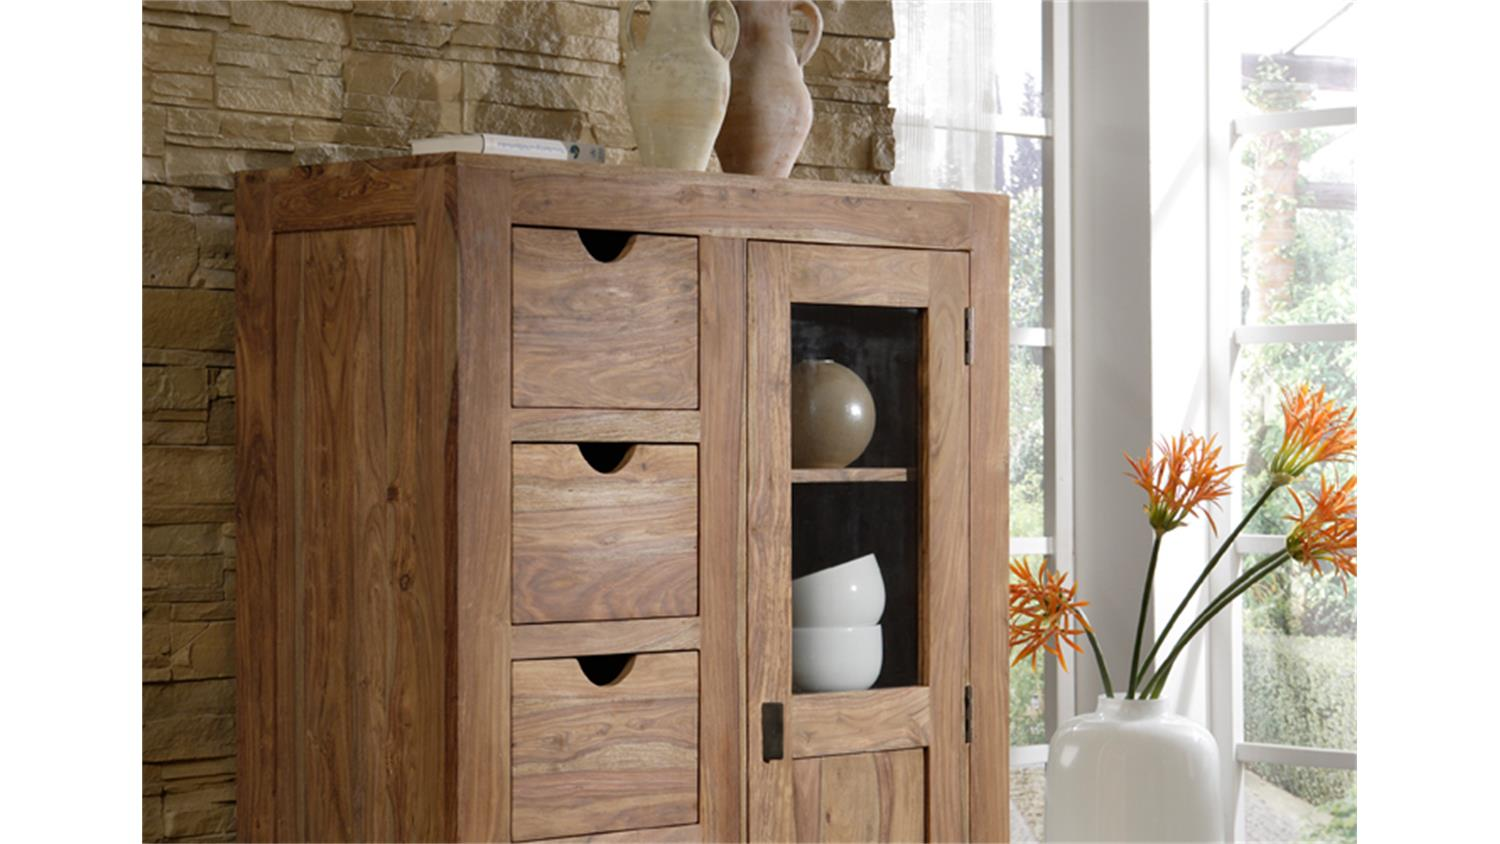 Möbel Landhausstil Onlineshop Brotschrank Yoga 6530 Sheesham Massiv Landhausstil Wolf Möbel